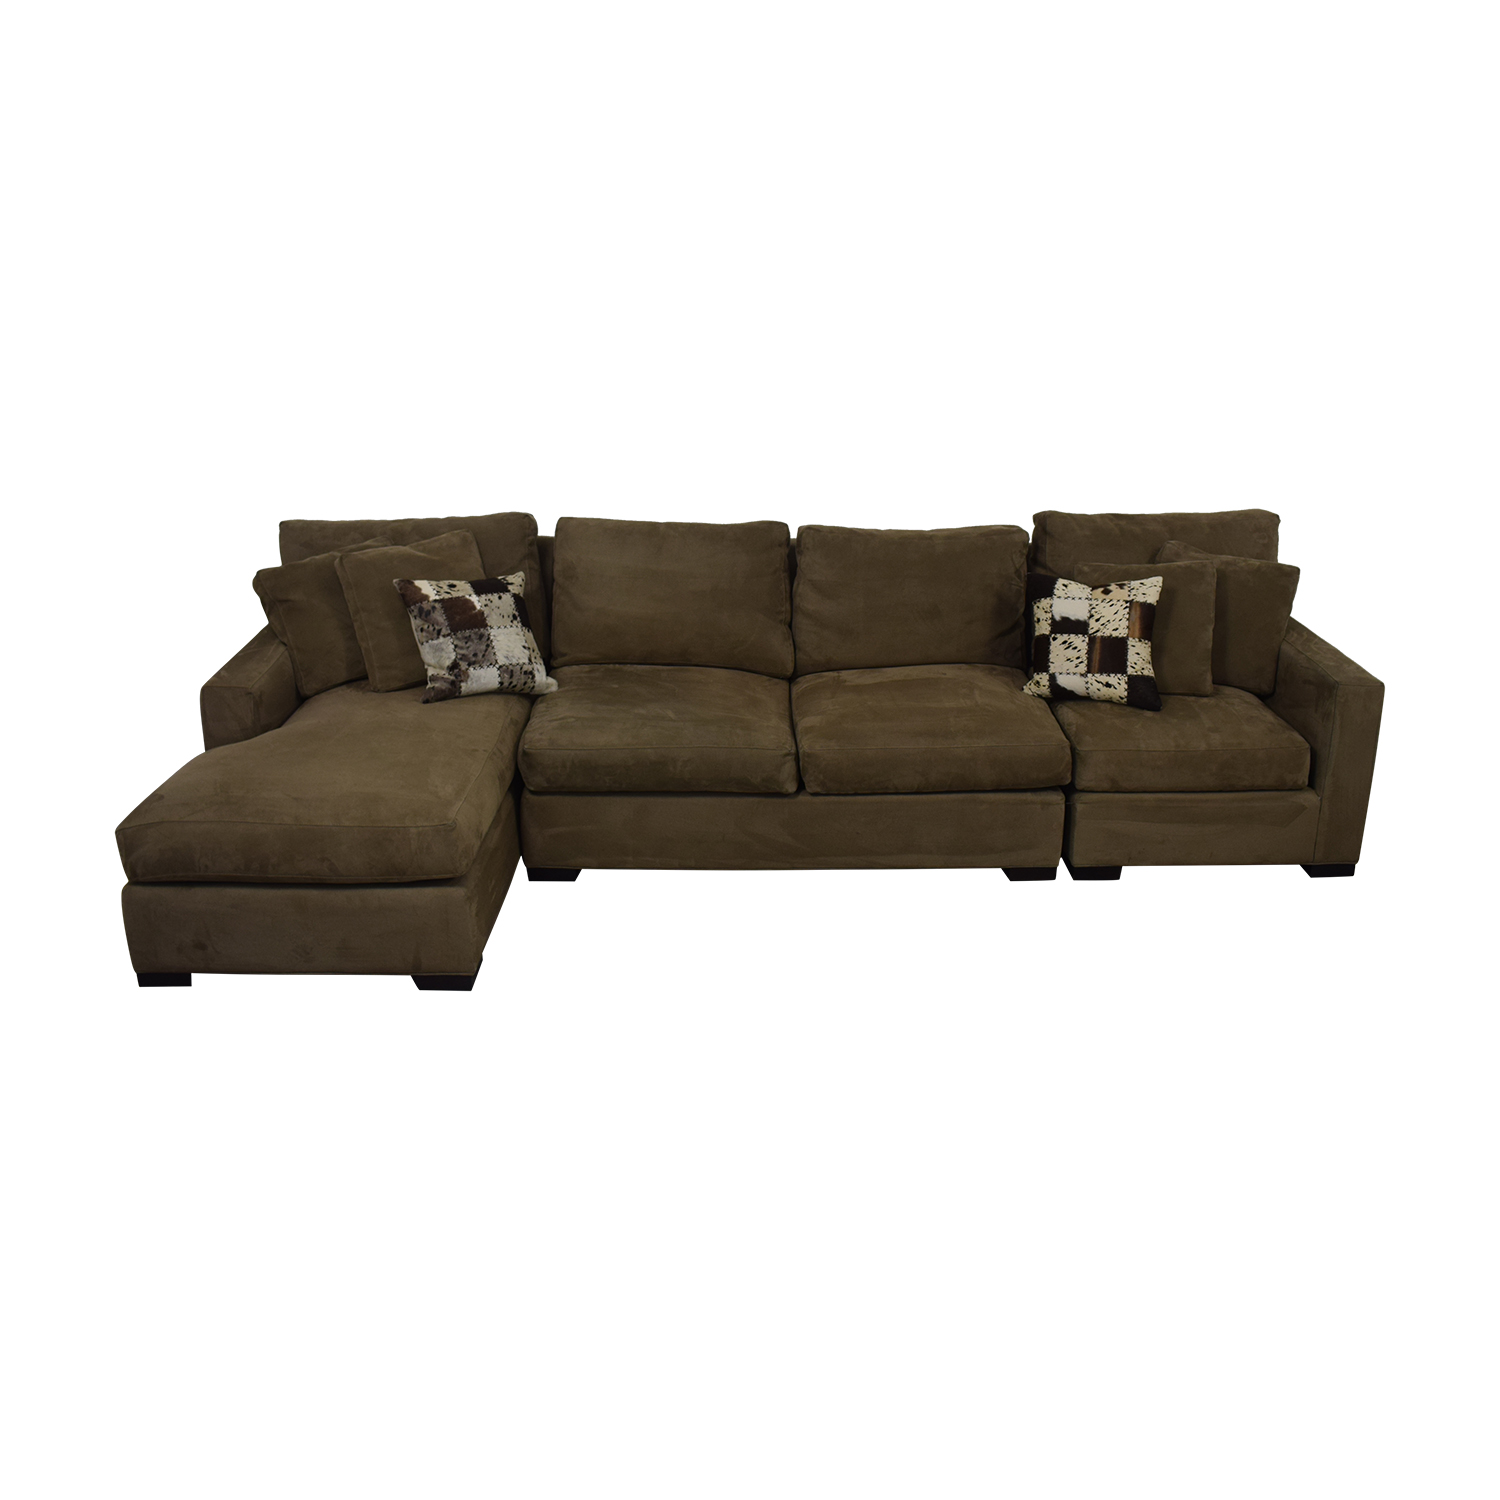 shop Crate & Barrel Axis Sectional Sofa Crate & Barrel Sectionals